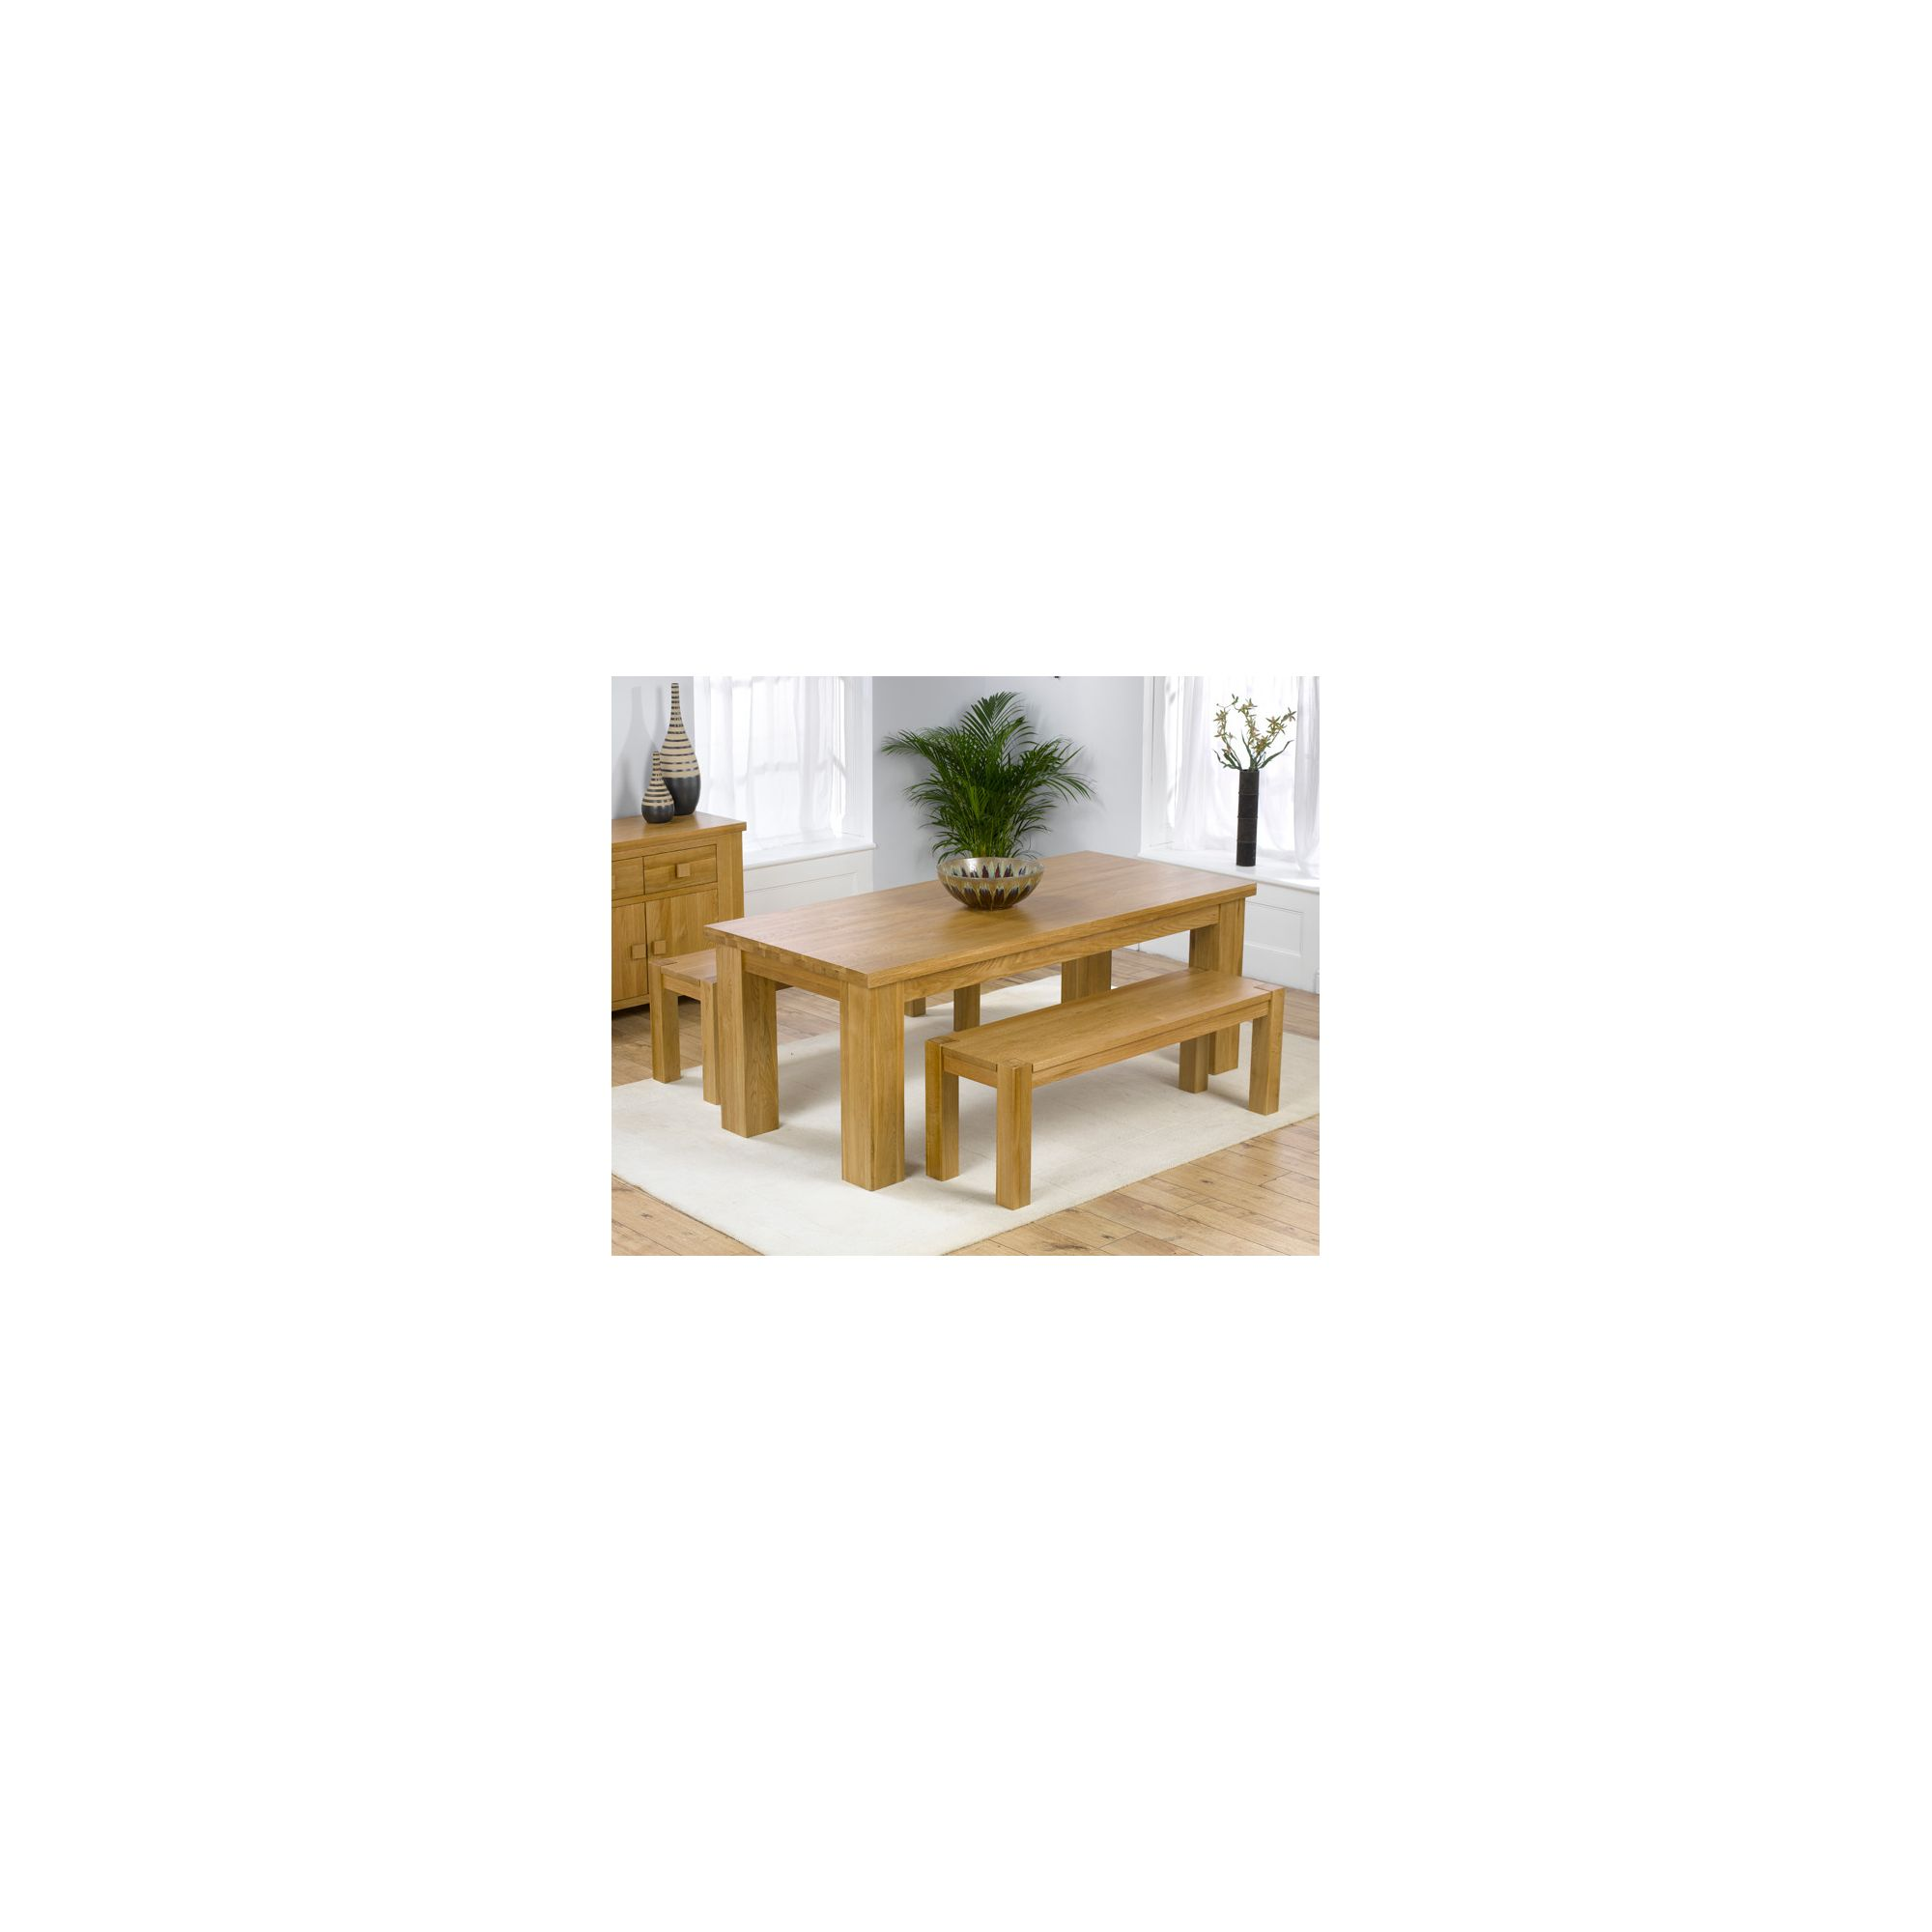 Mark Harris Furniture Barcelona Solid Oak Dining Table with Benches